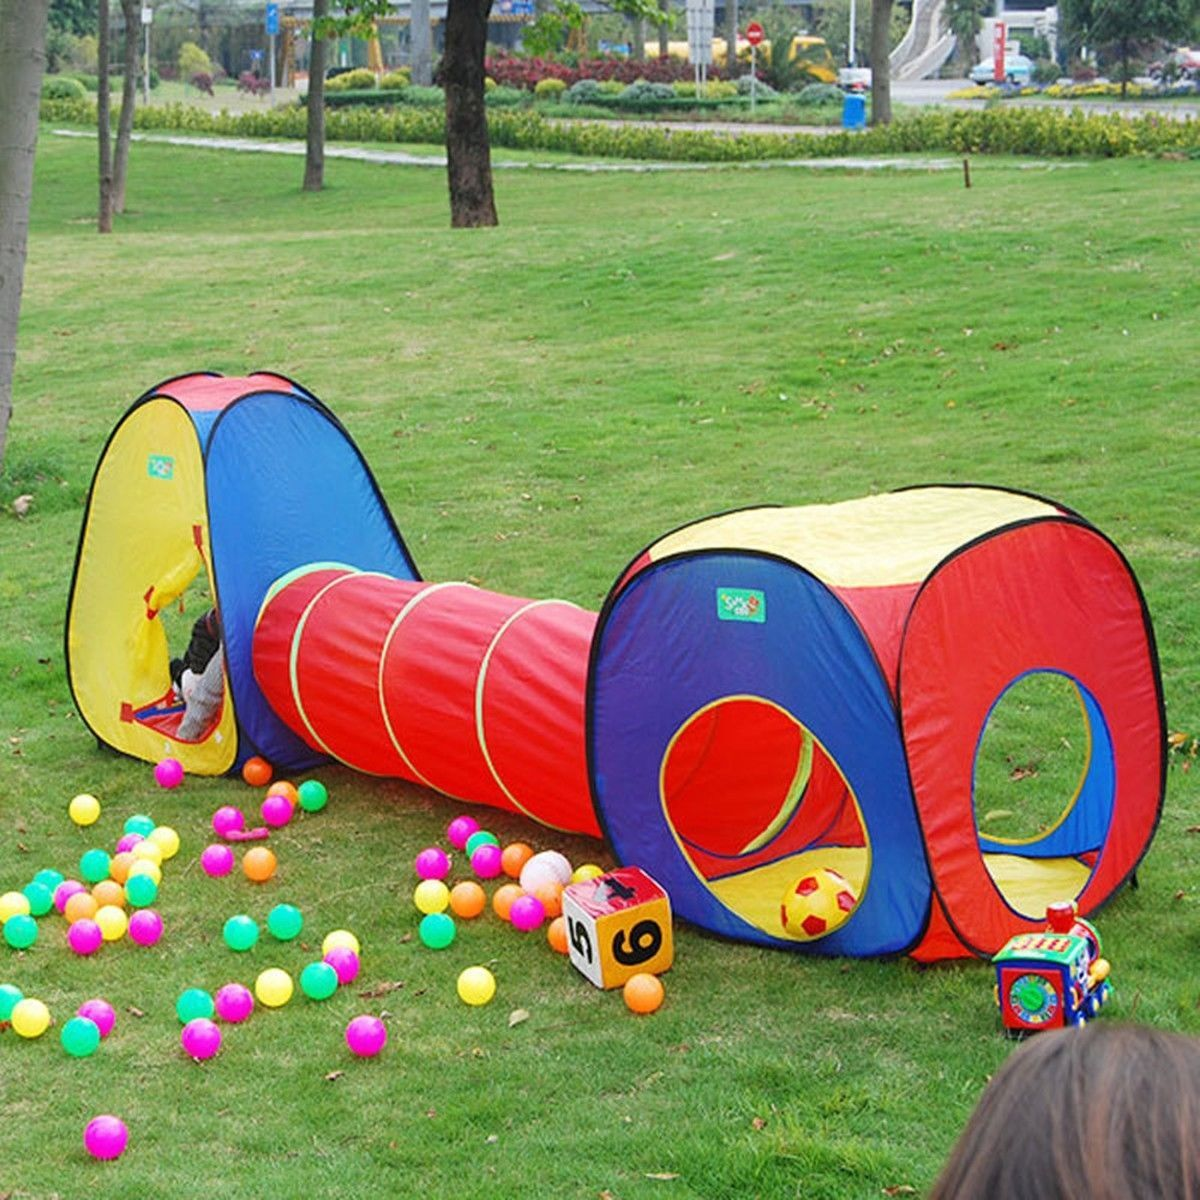 Ball Pit Kids Tent Playhouse with Tunnel Toddler Toys Children Ocean Play House  sc 1 st  Pinterest & Ball Pit Kids Tent Playhouse with Tunnel Toddler Toys Children ...